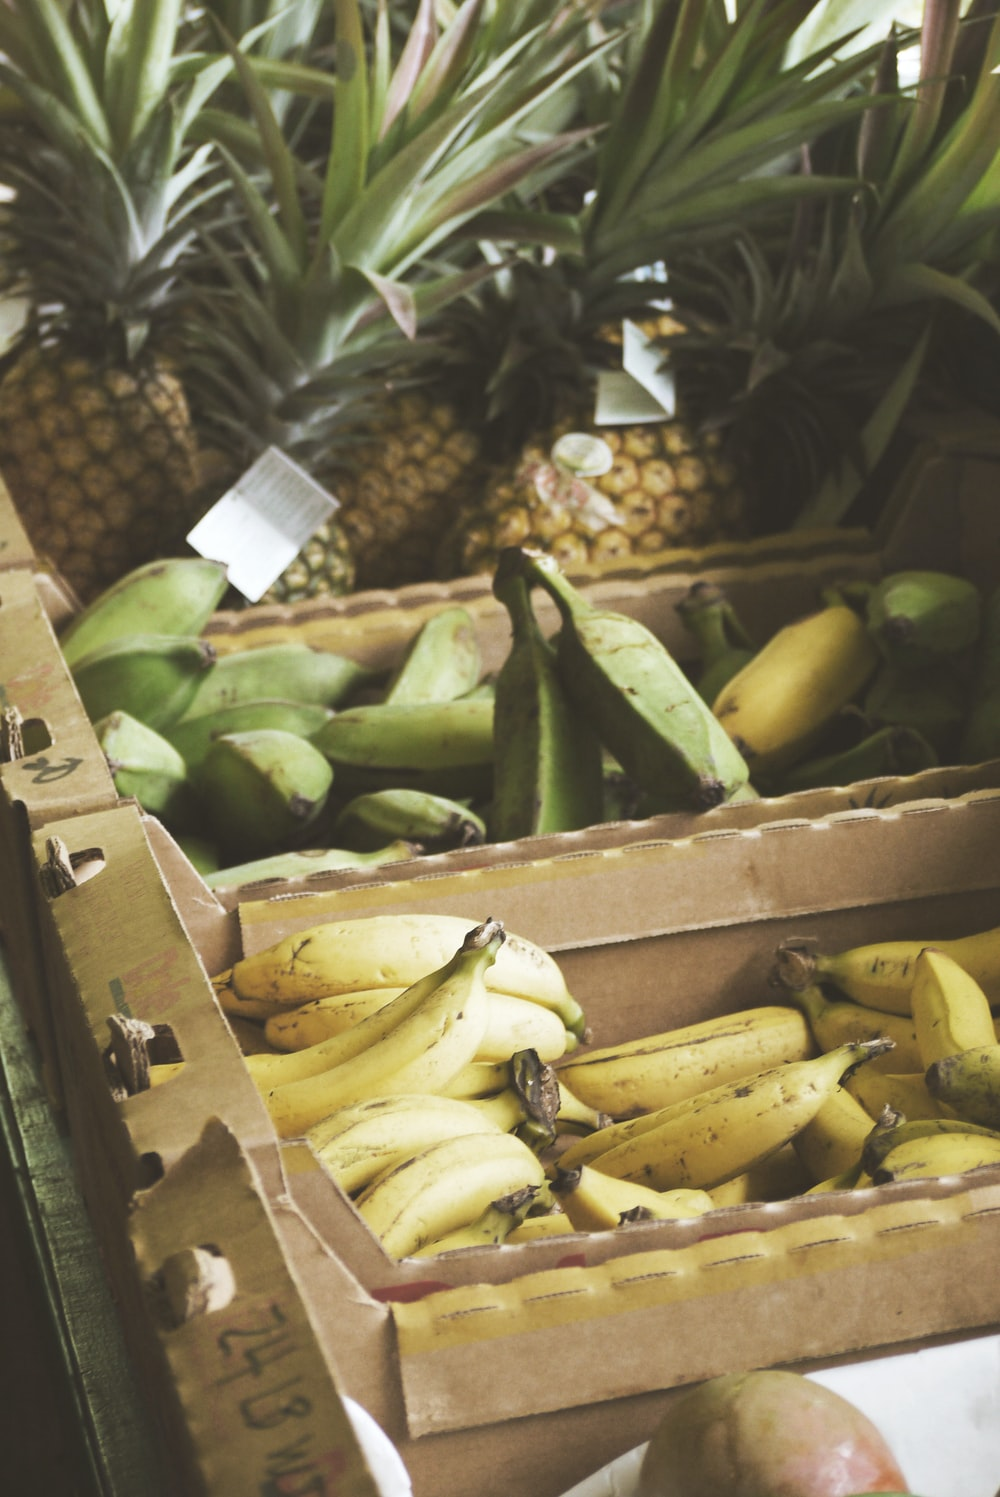 green and yellow bananas near pineapples